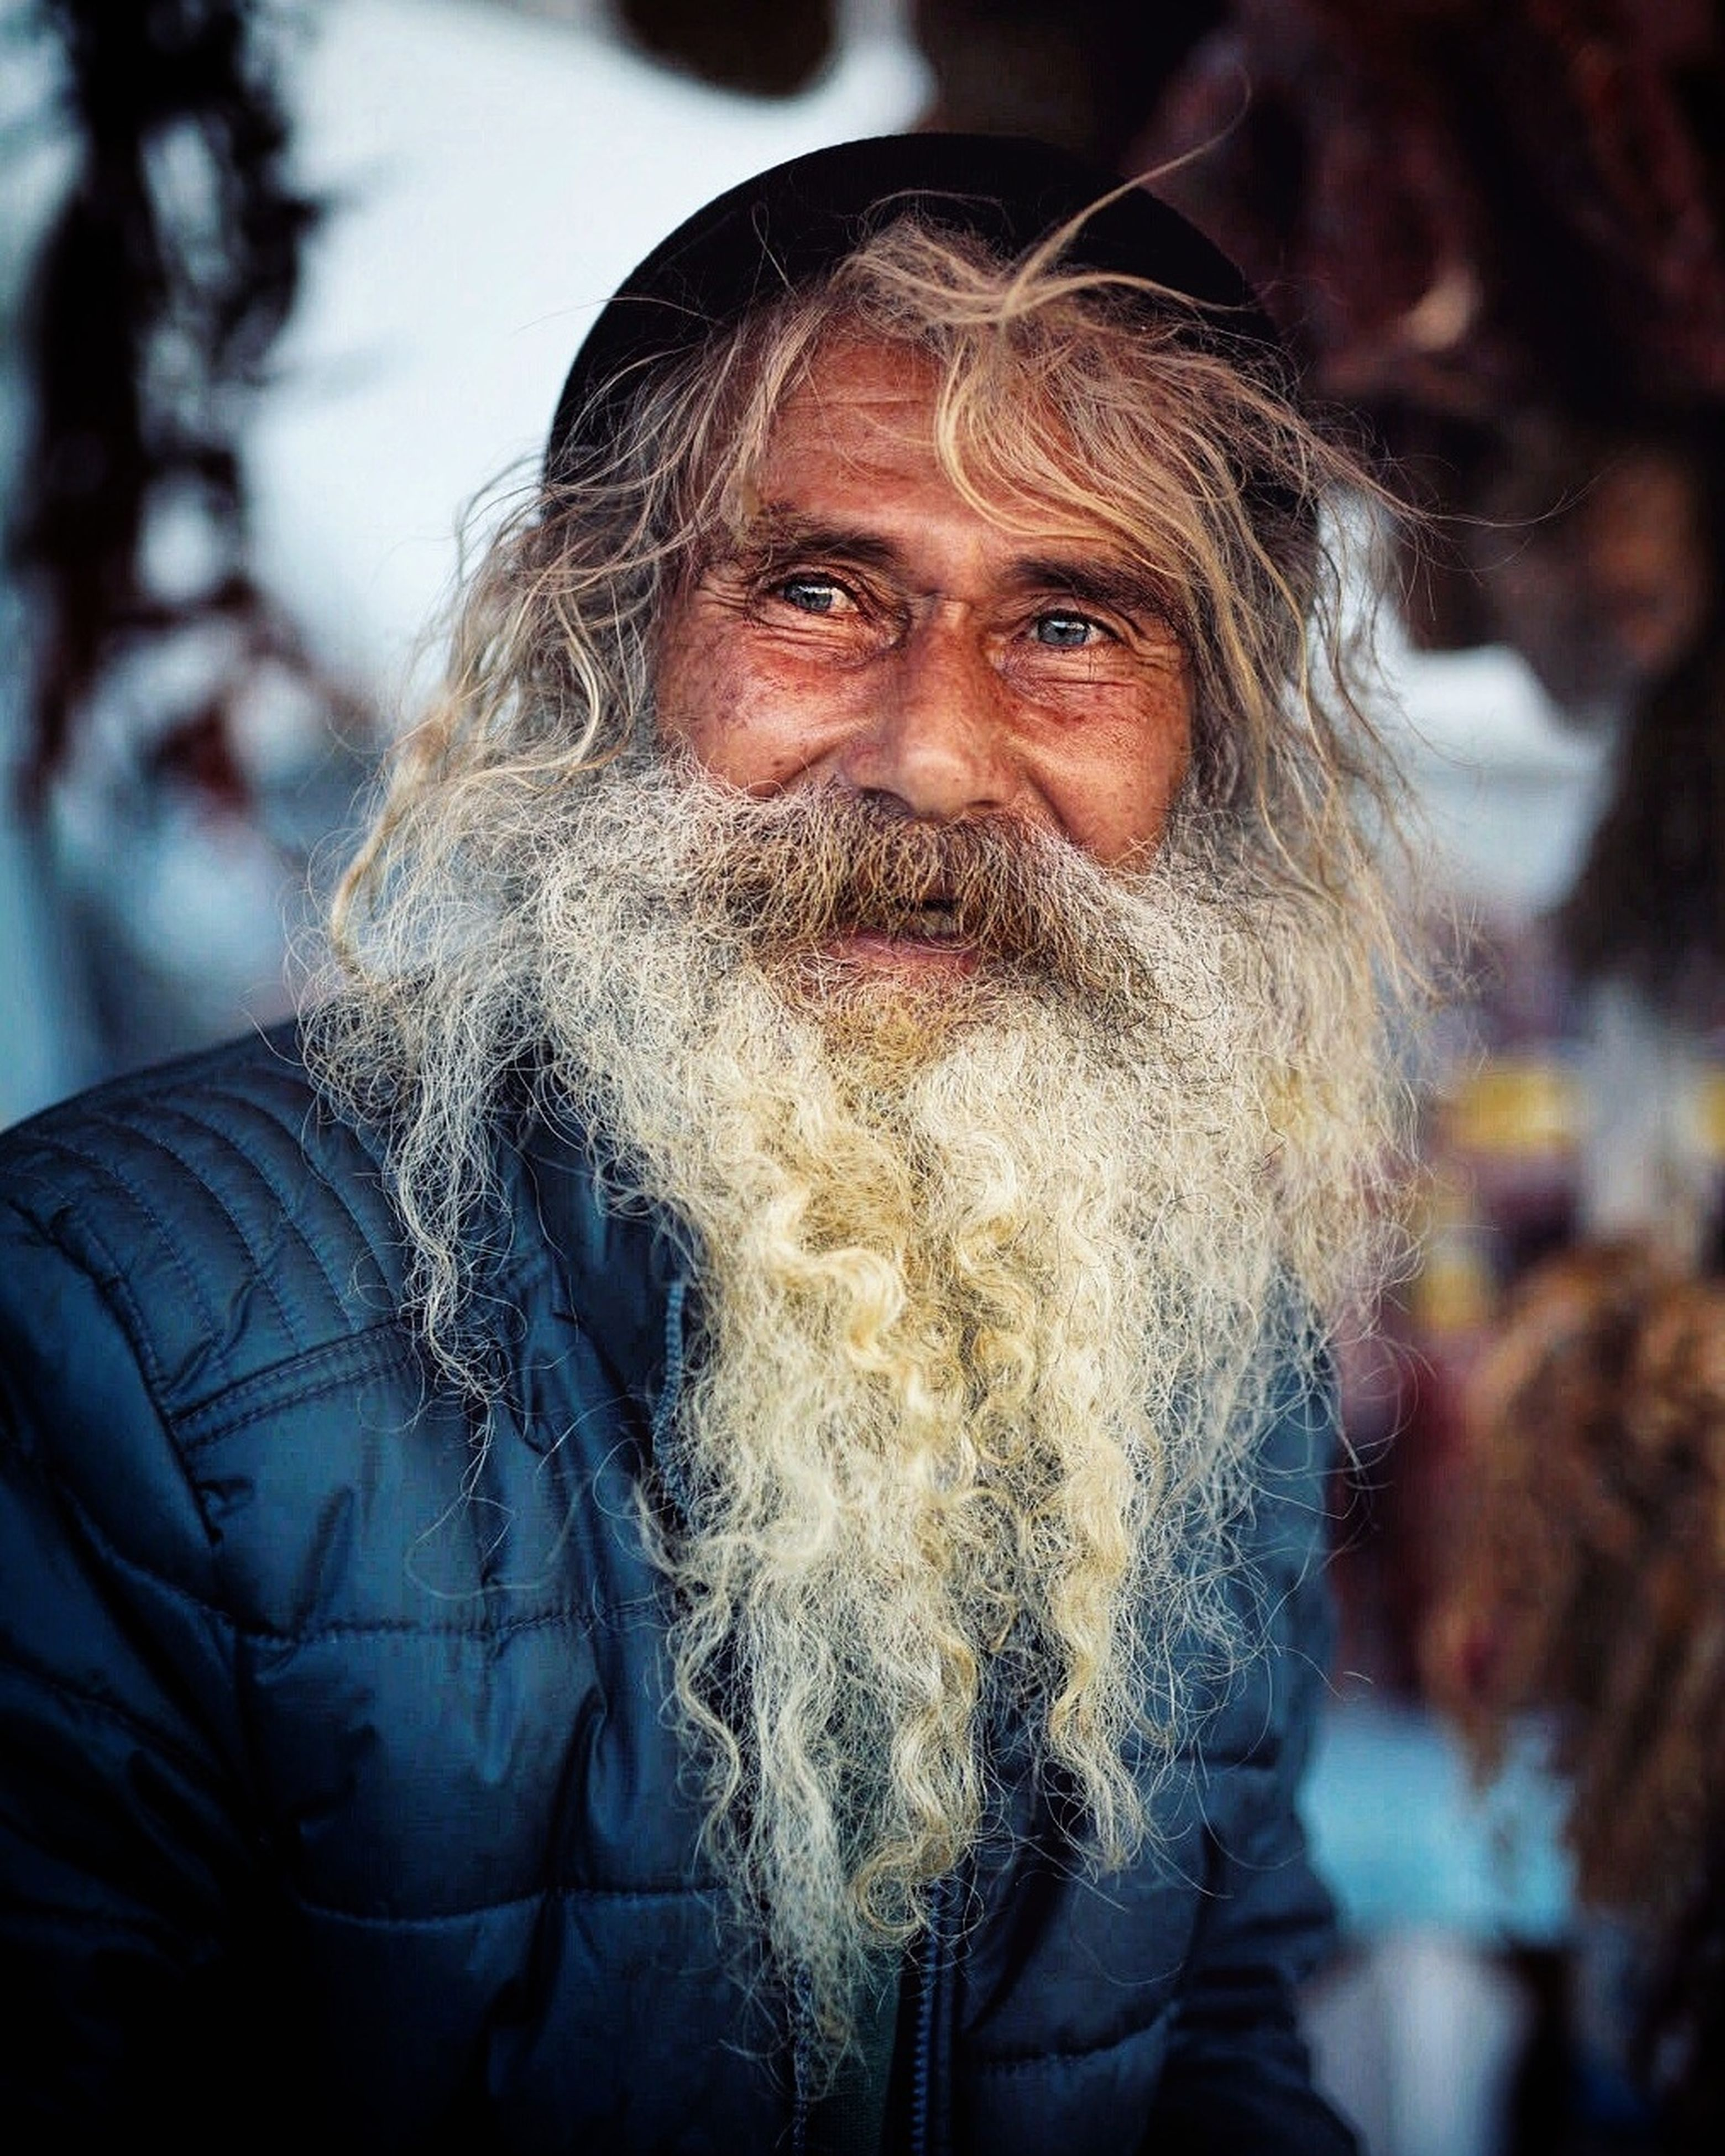 beard, real people, portrait, senior men, senior adult, looking at camera, one person, outdoors, focus on foreground, one senior man only, men, long hair, lifestyles, front view, mustache, close-up, cold temperature, one man only, city, day, only men, adult, people, adults only